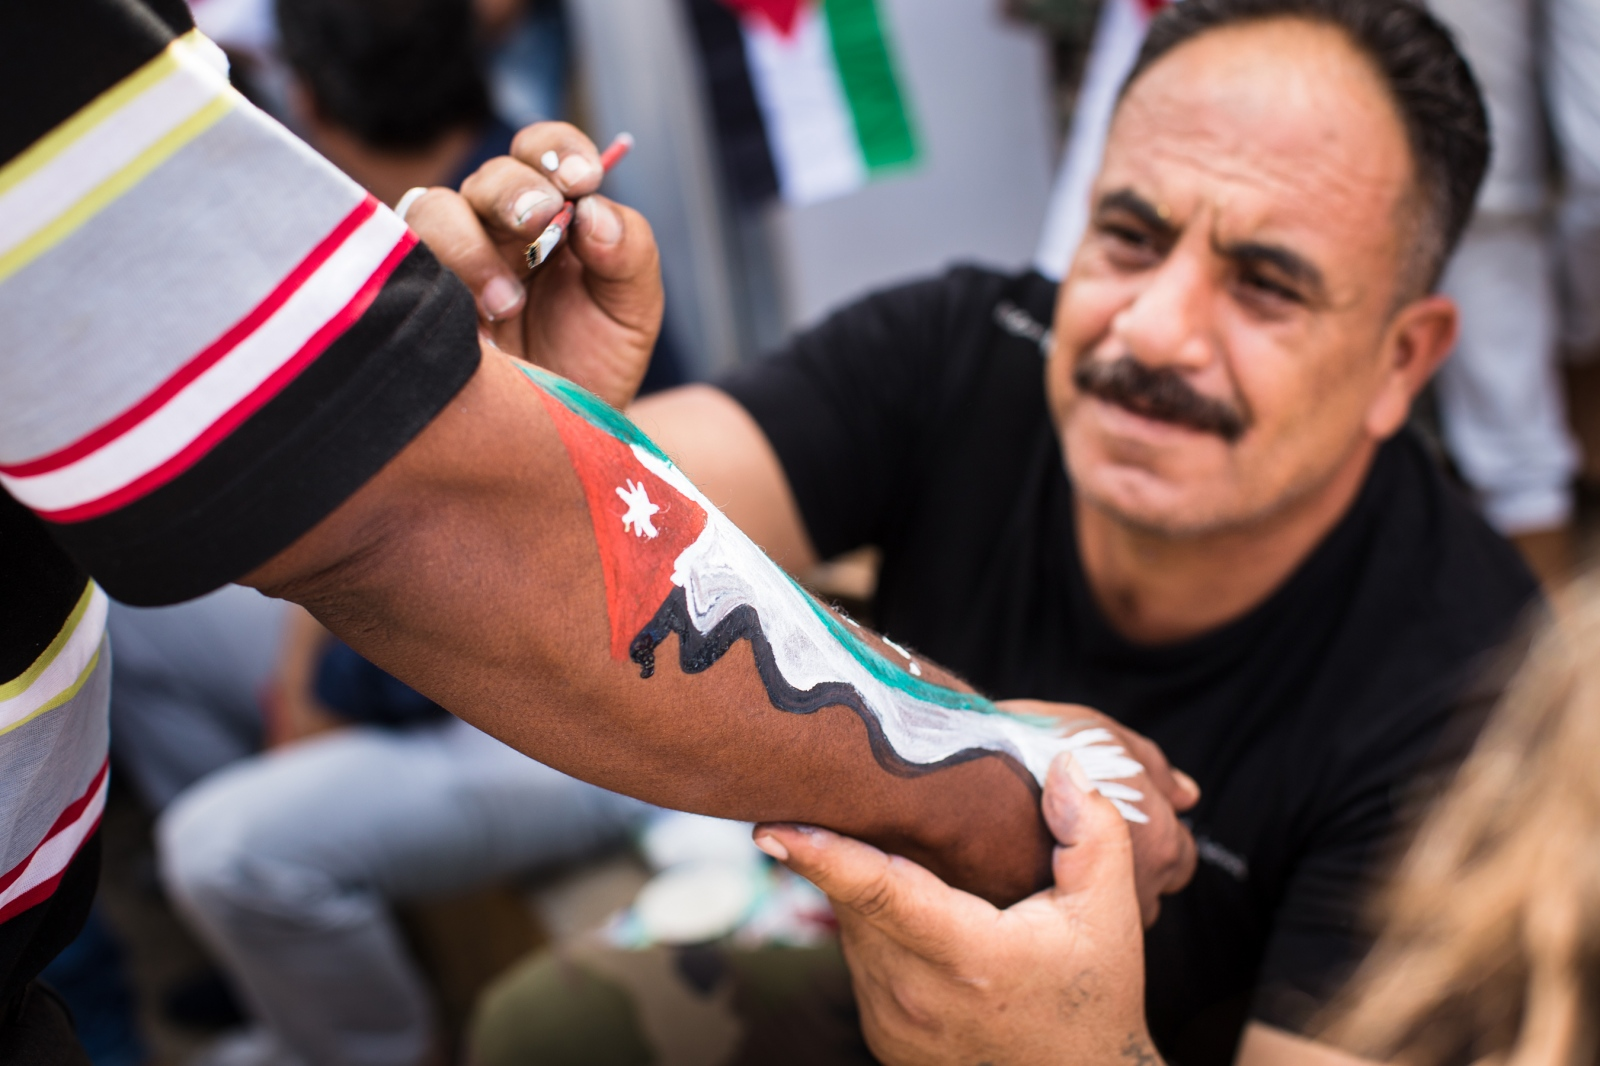 A man gets the Jordanian flag painted on his forearm at celebrations marking the centennial of the Great Arab Revolt in Amman, Jordan, on June 3, 2016.